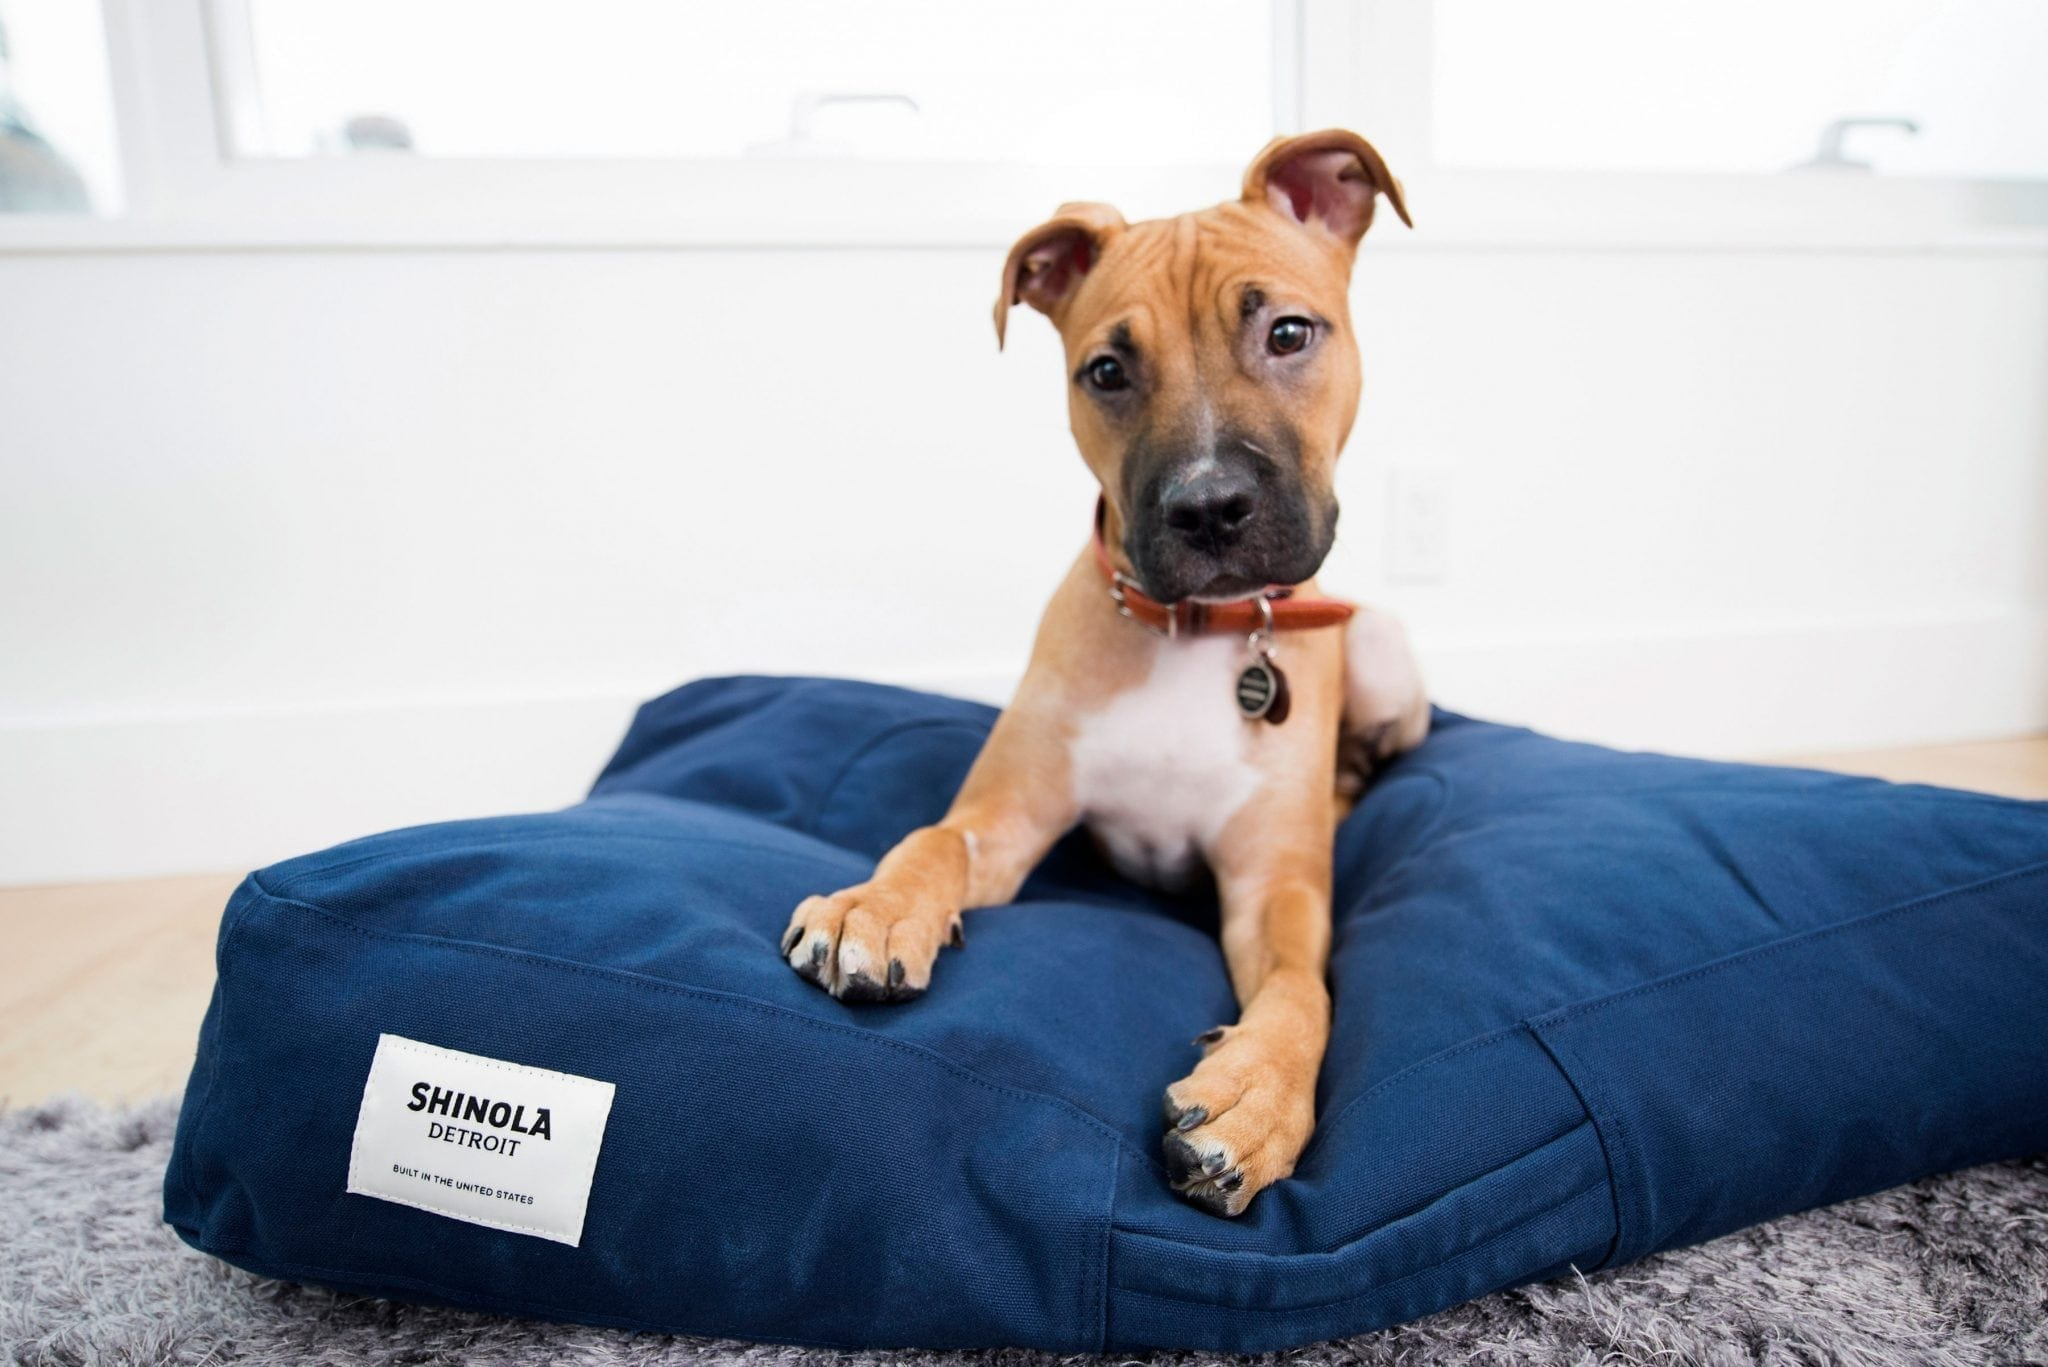 A dog laying on a plush dog bed, inside a guest room at The James Hotel NoMad. The cute dog looks quizzically at the camera.